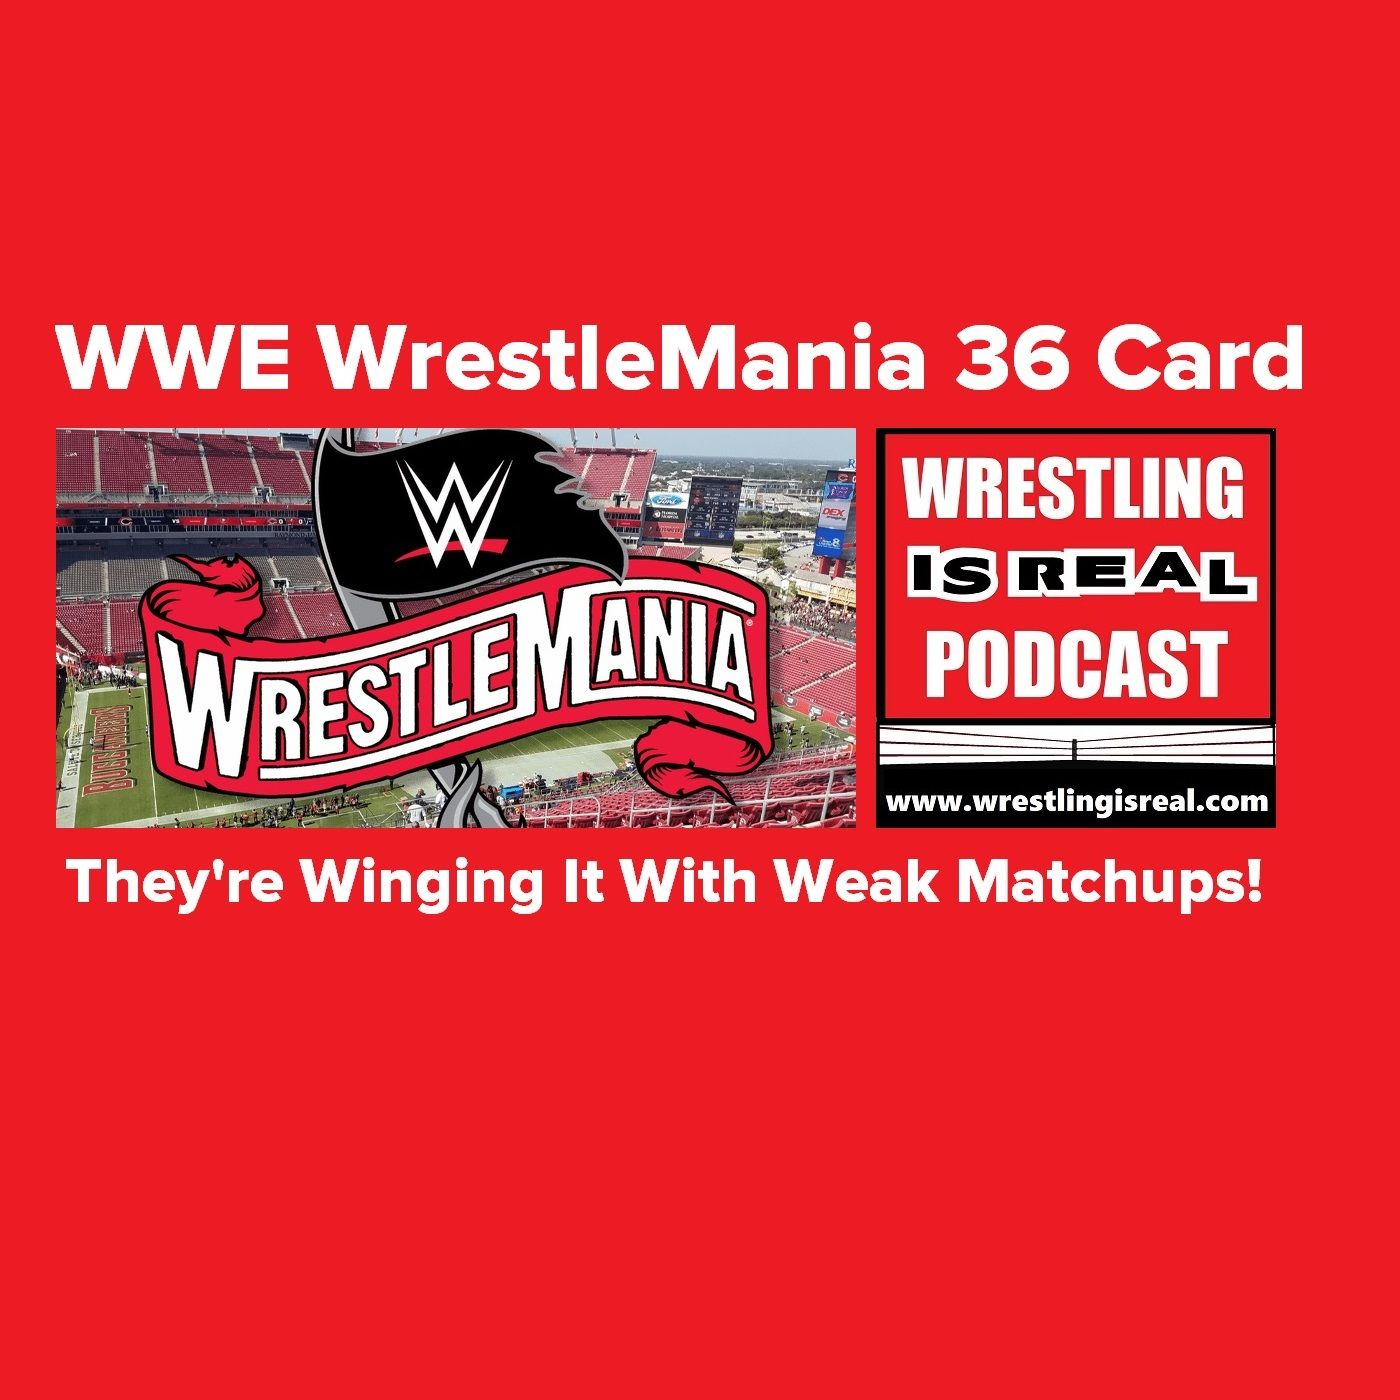 WWE WrestleMania 36 Card...They're Winging It With Weak Matchups! KOP022720-517